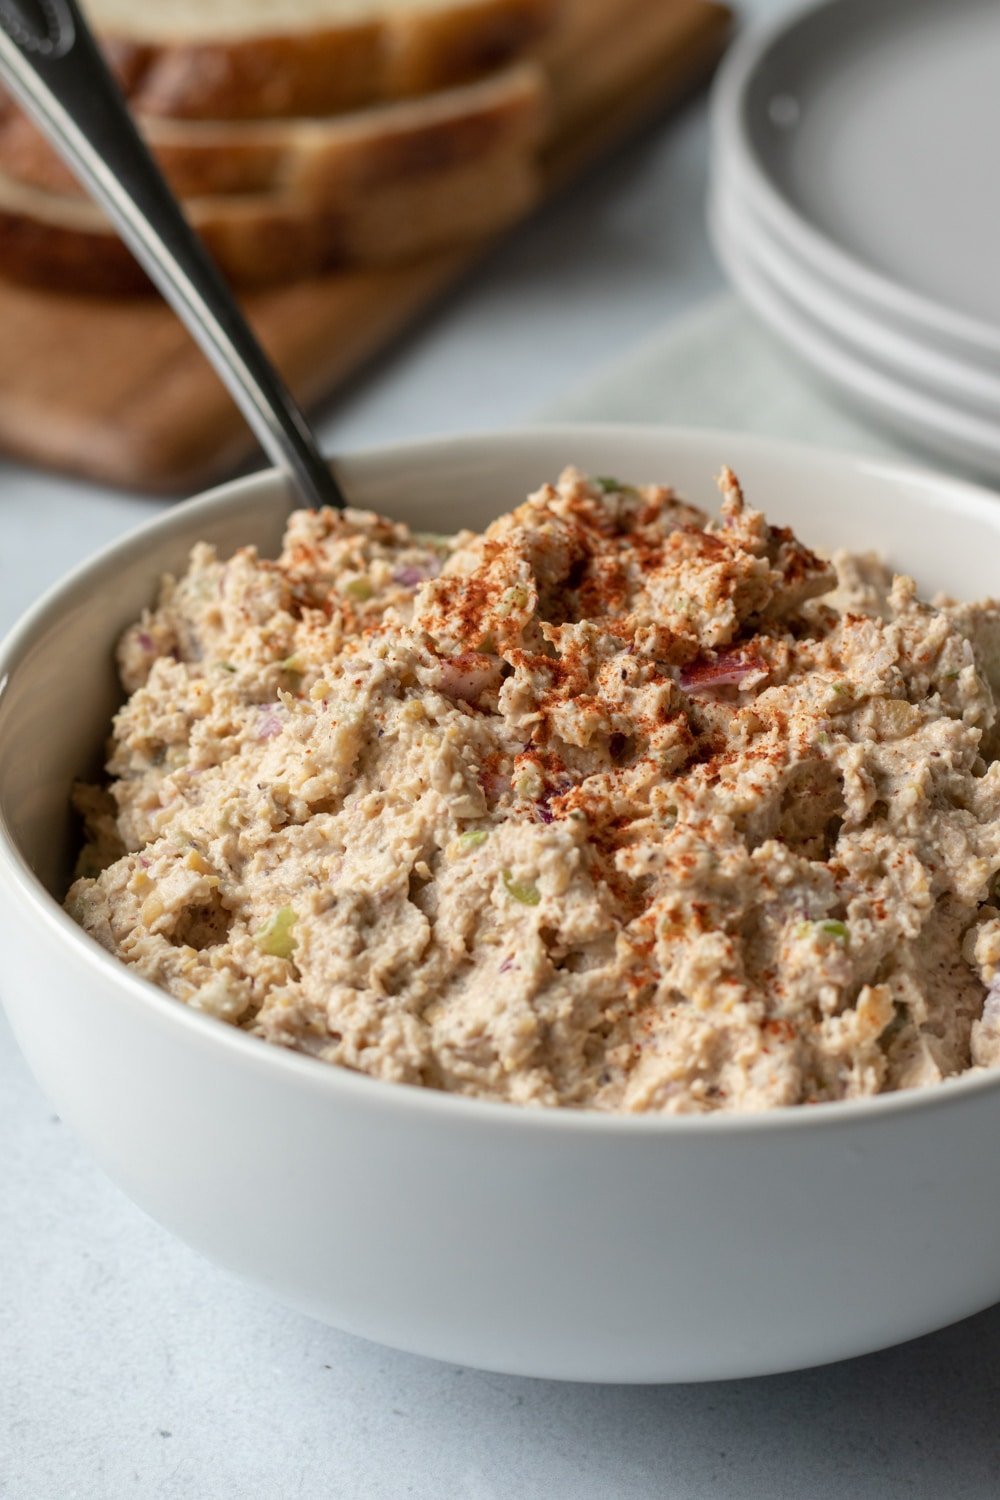 vegan tuna salad in a white bowl sprinkled with cayenne